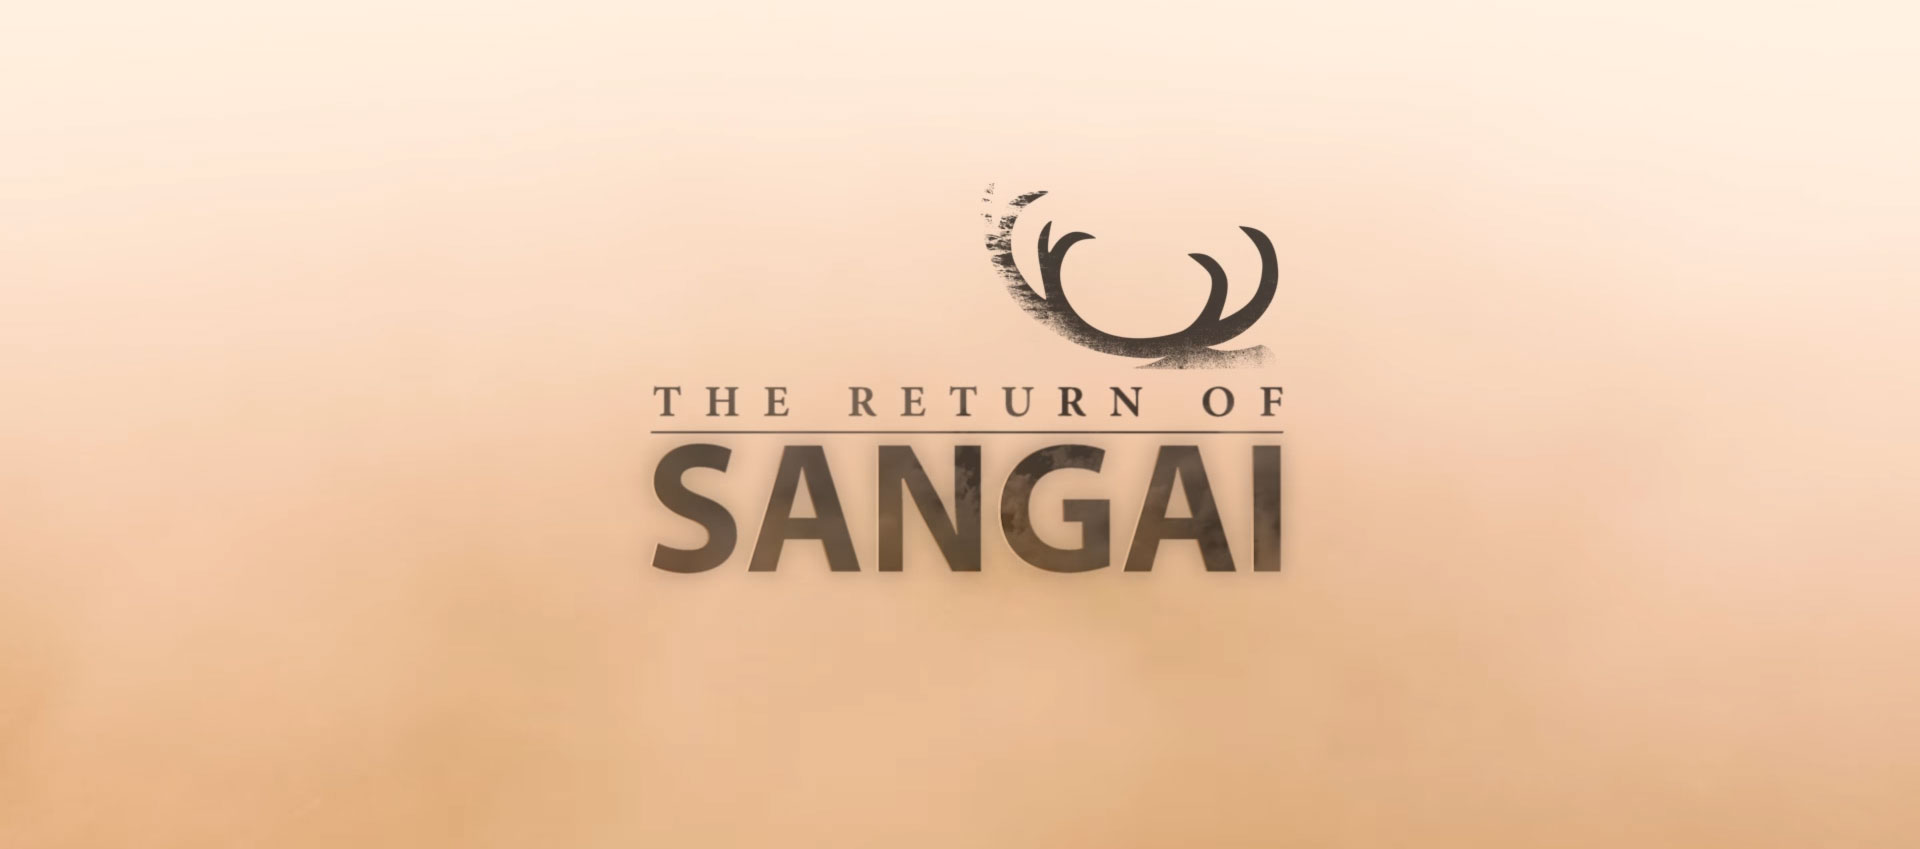 The Return of Sangai